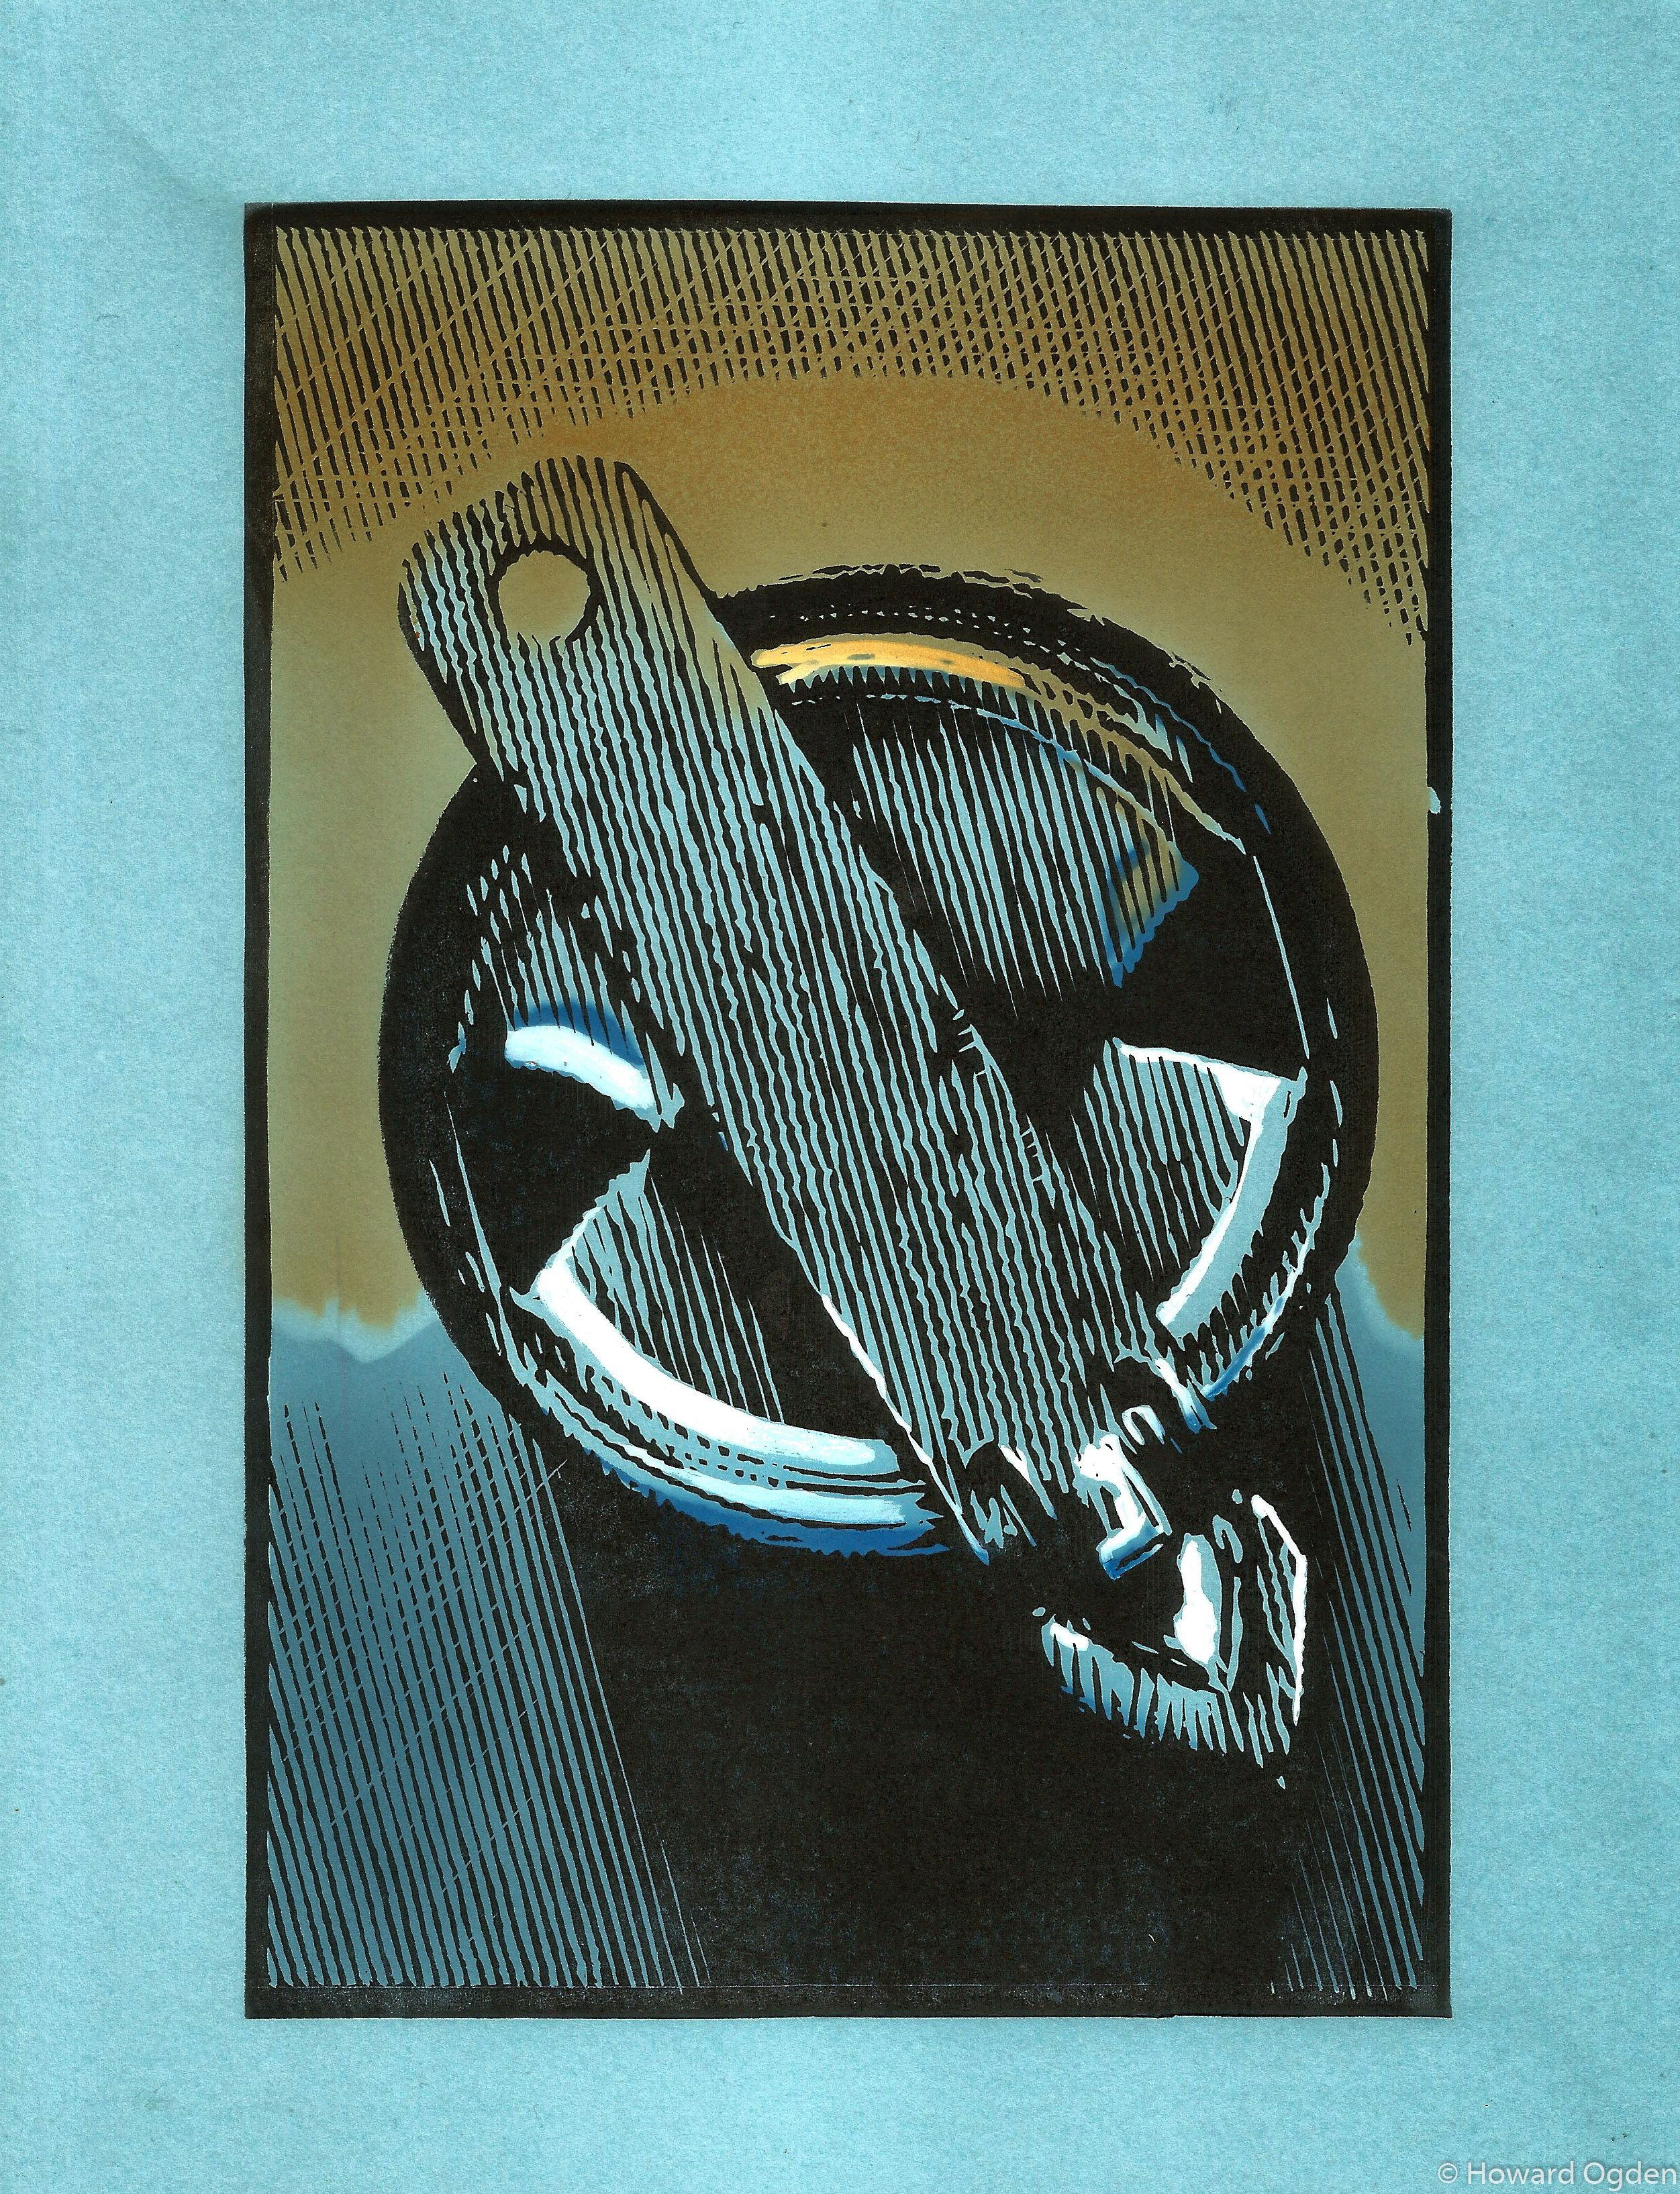 Old School Can Opener Hand Colored Block Print Linocut And Watercolor Pochoir By Howard Ogden